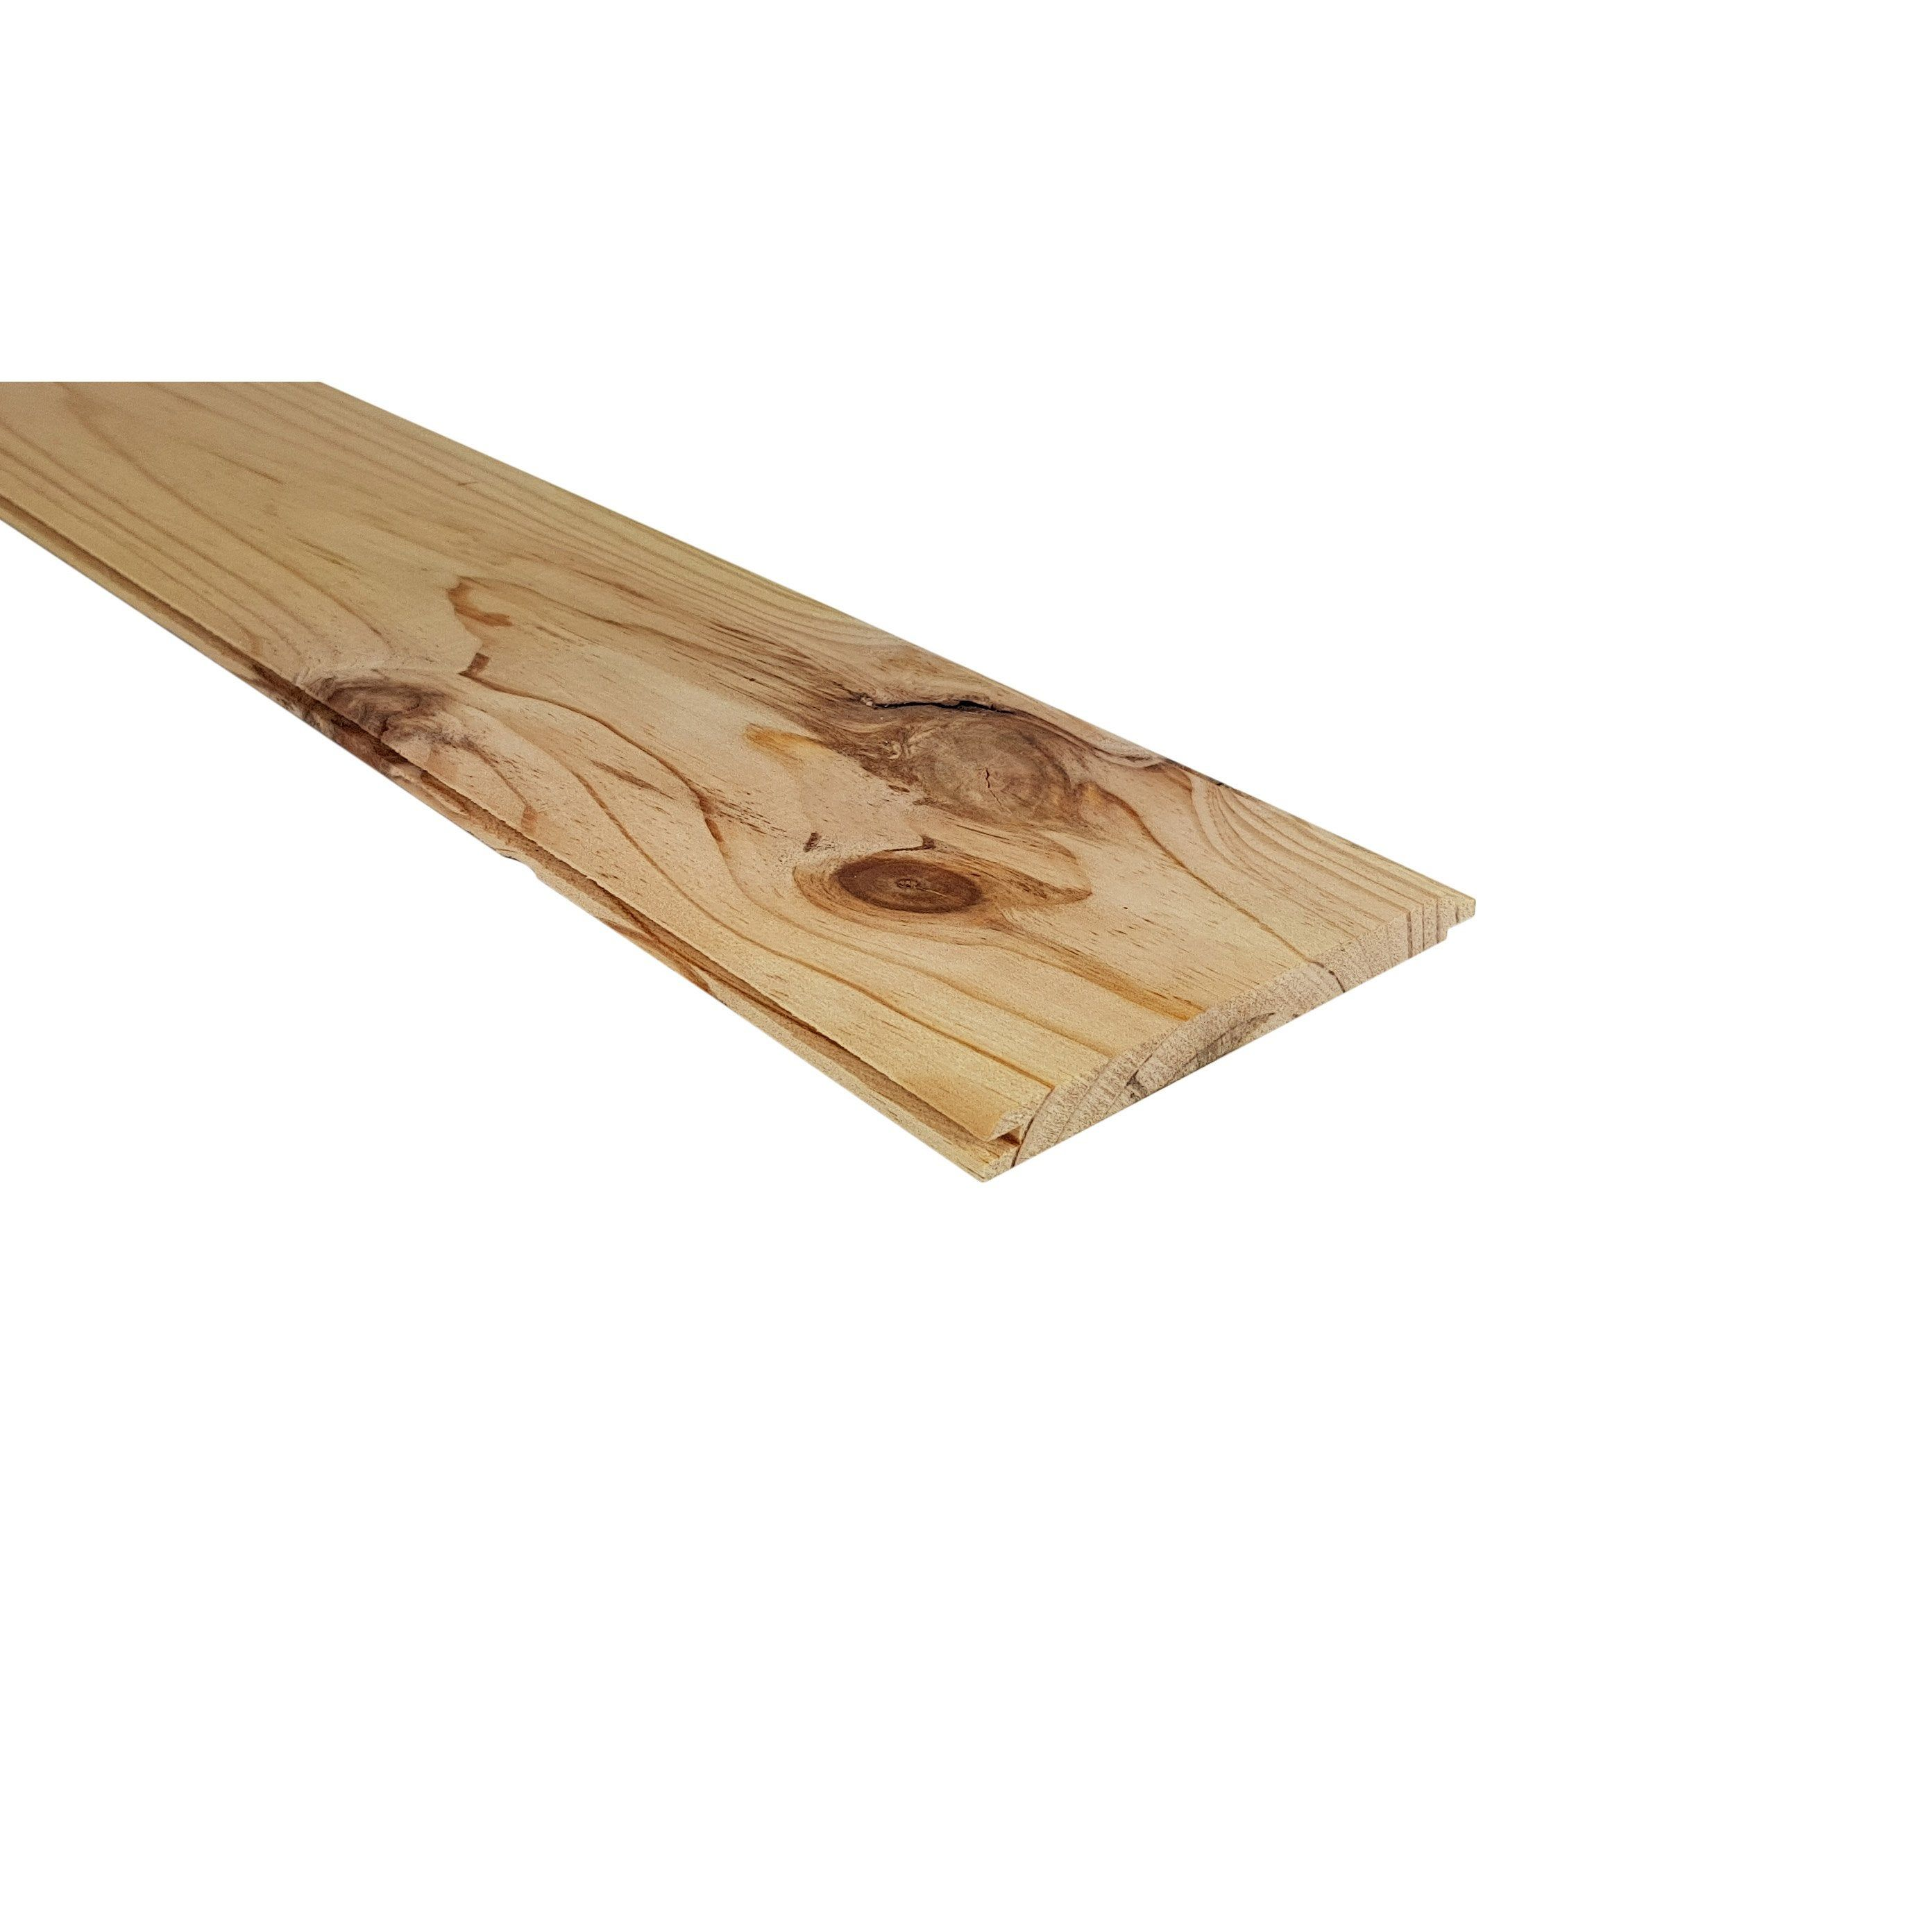 Lambris Bois Naturel Declasse L 200 X L 10 Cm X Ep 10 Mm Isb Lambris Bois Bois Naturel Et Lambris